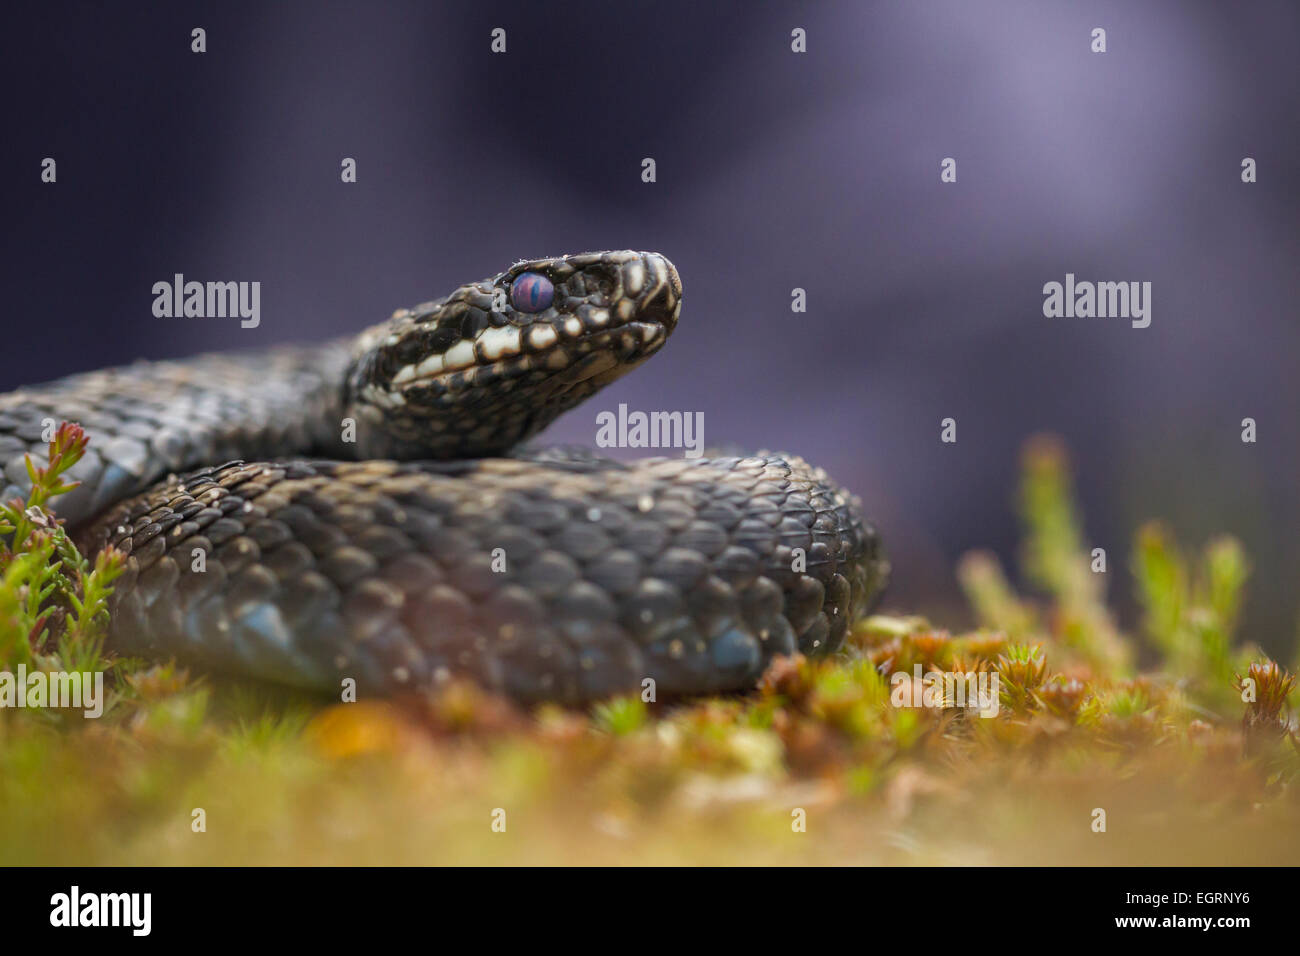 Common adder Vipera berus (controlled conditions), adult male, coiled amongst heathland vegetation, Arne, Dorset, Stock Photo